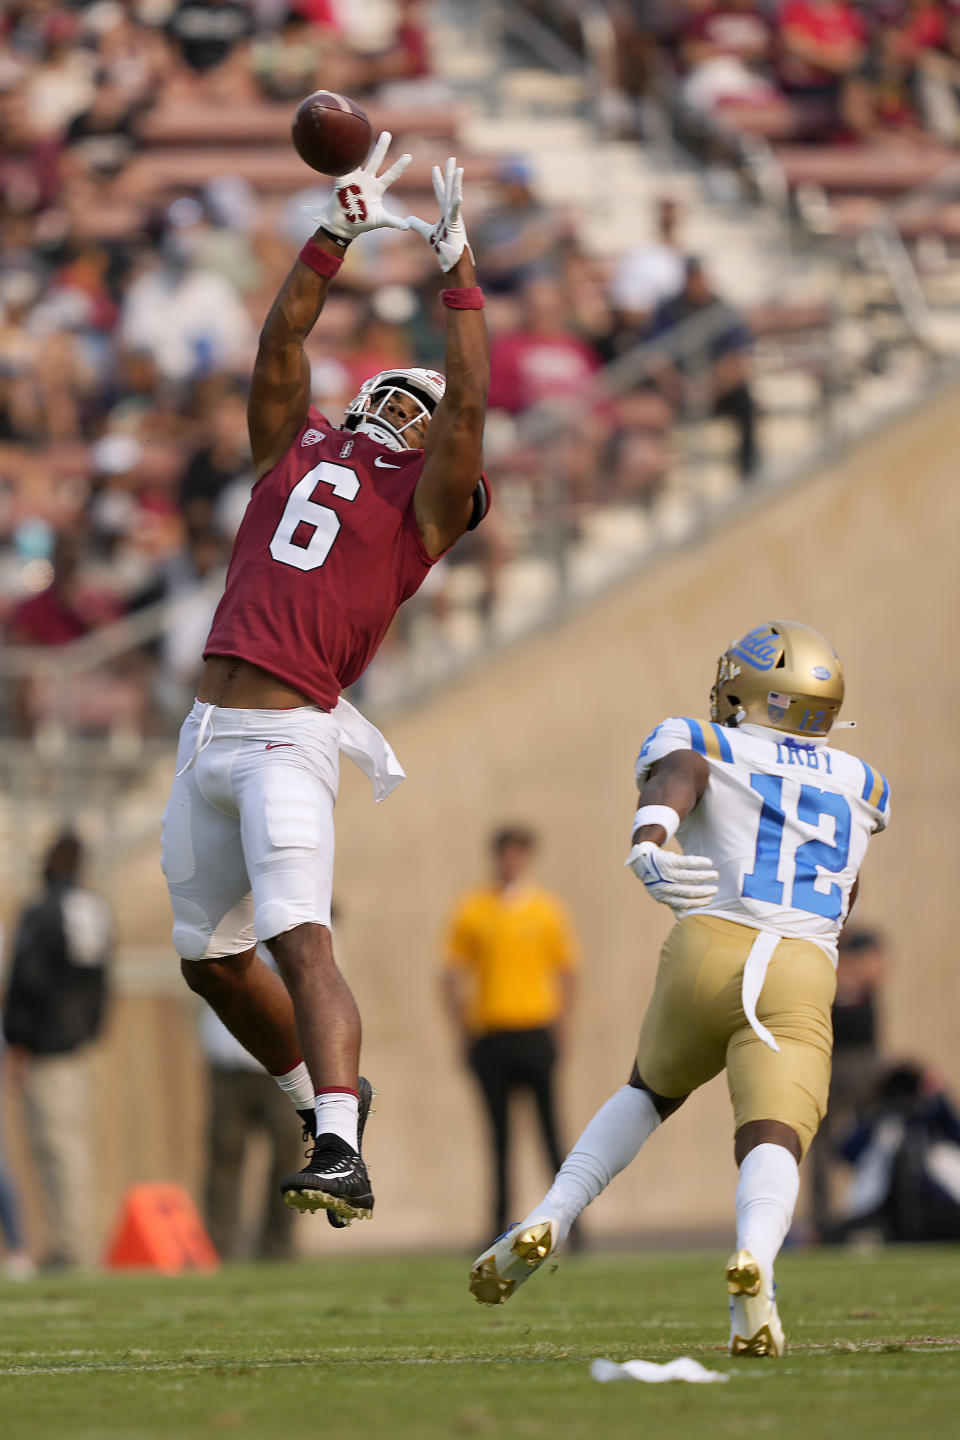 Stanford wide receiver Elijah Higgins (6) catches a pass over UCLA defensive back Martell Irby (12) during the first half of an NCAA college football game Saturday, Sept. 25, 2021, in Stanford, Calif. (AP Photo/Tony Avelar)